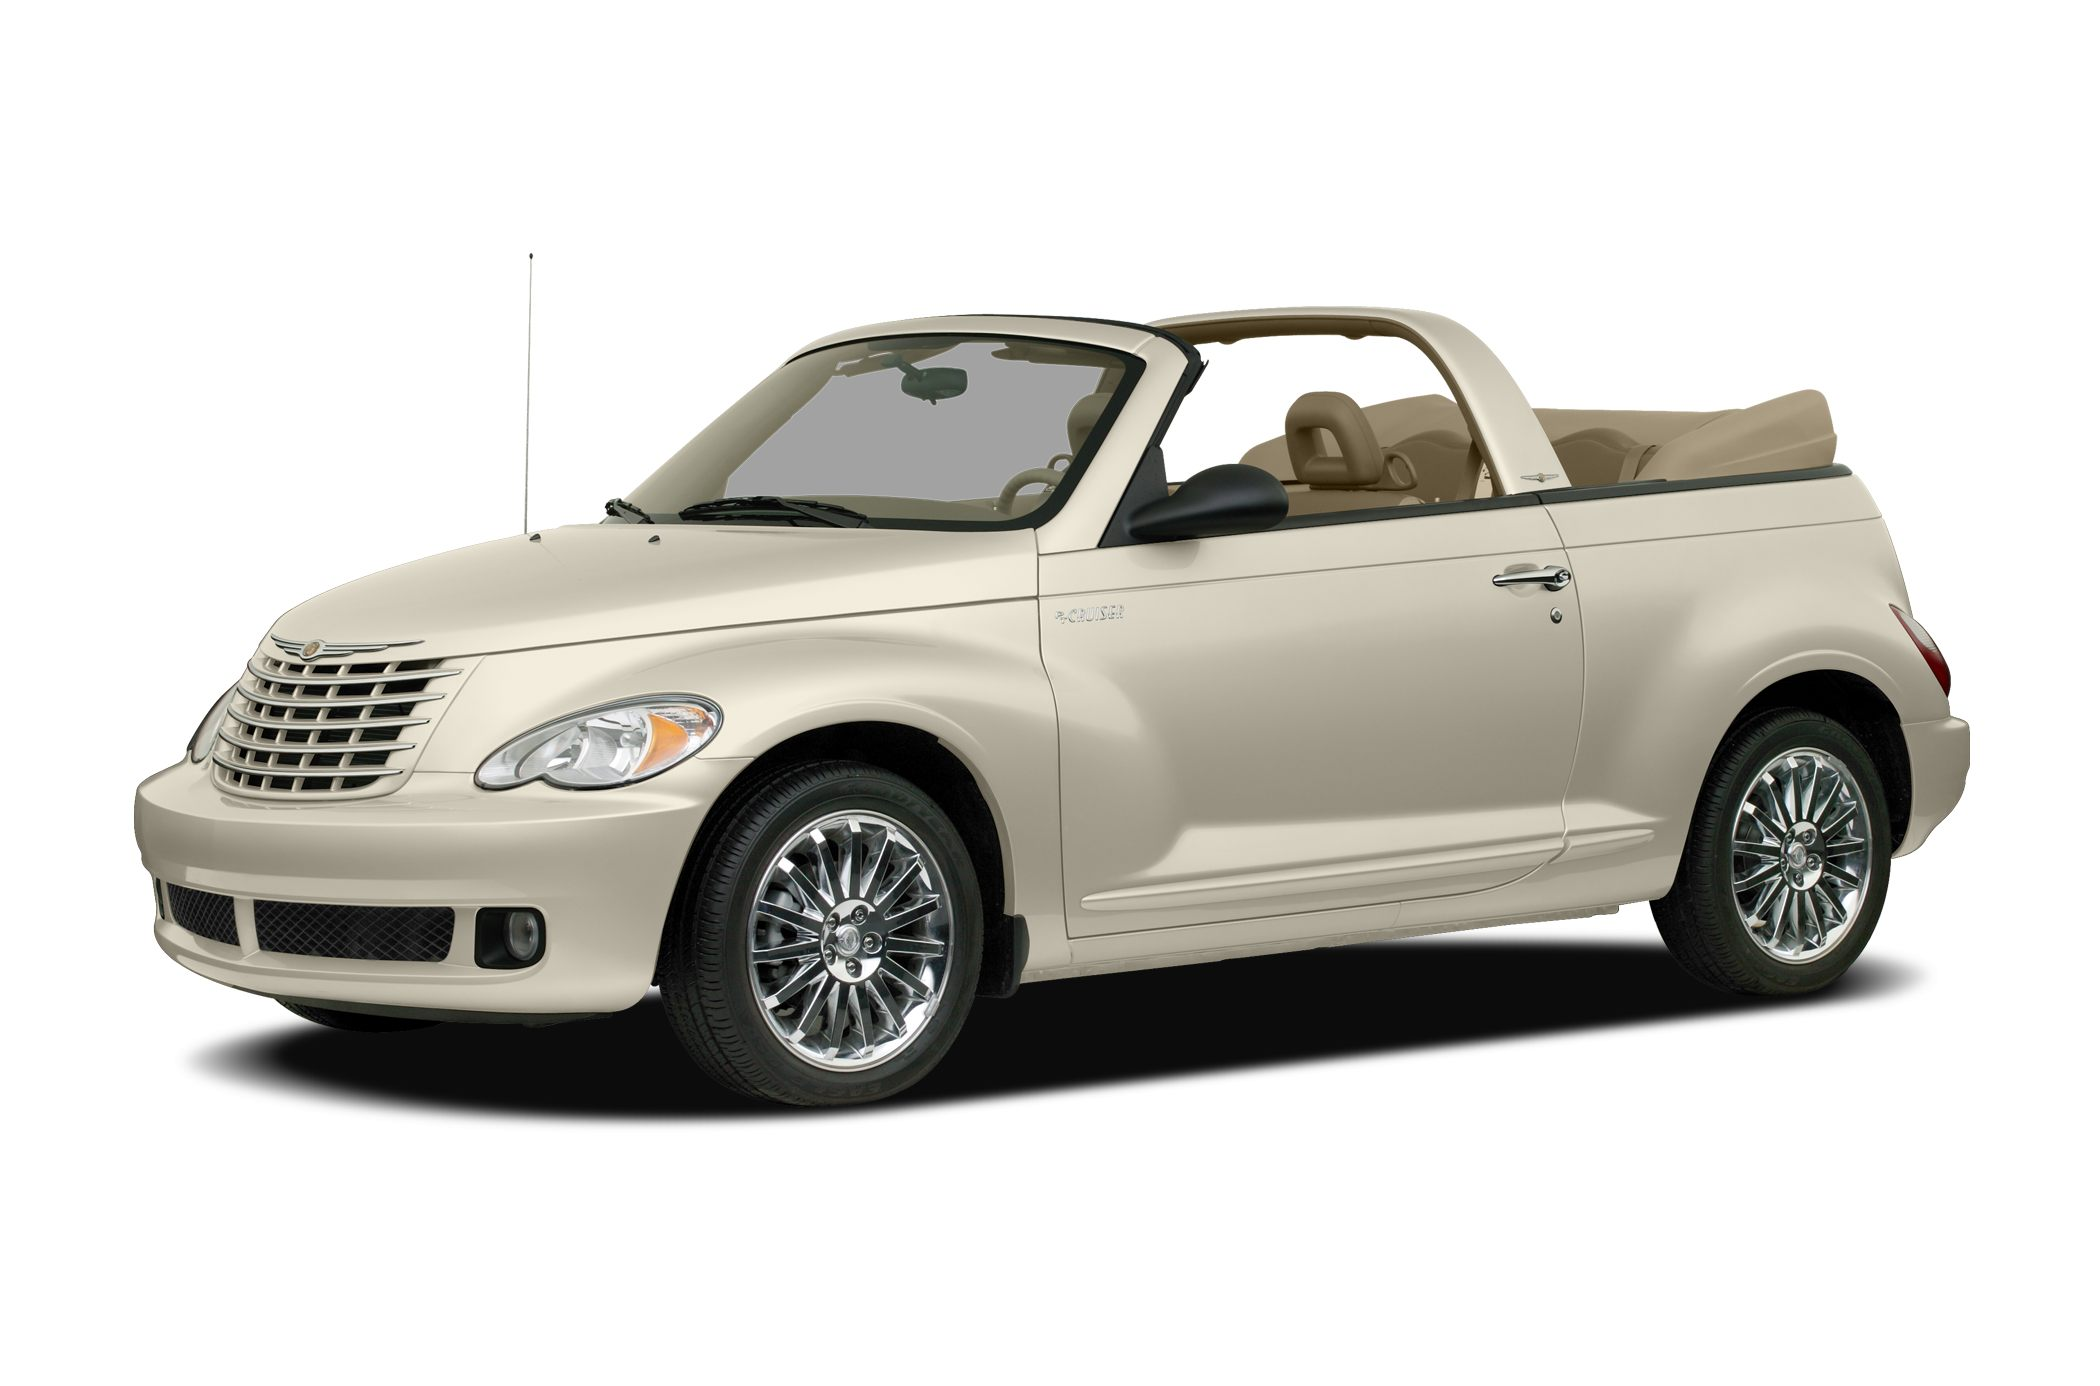 2008 Chrysler PT Cruiser Touring Wagon for sale in Front Royal for $6,456 with 91,988 miles.